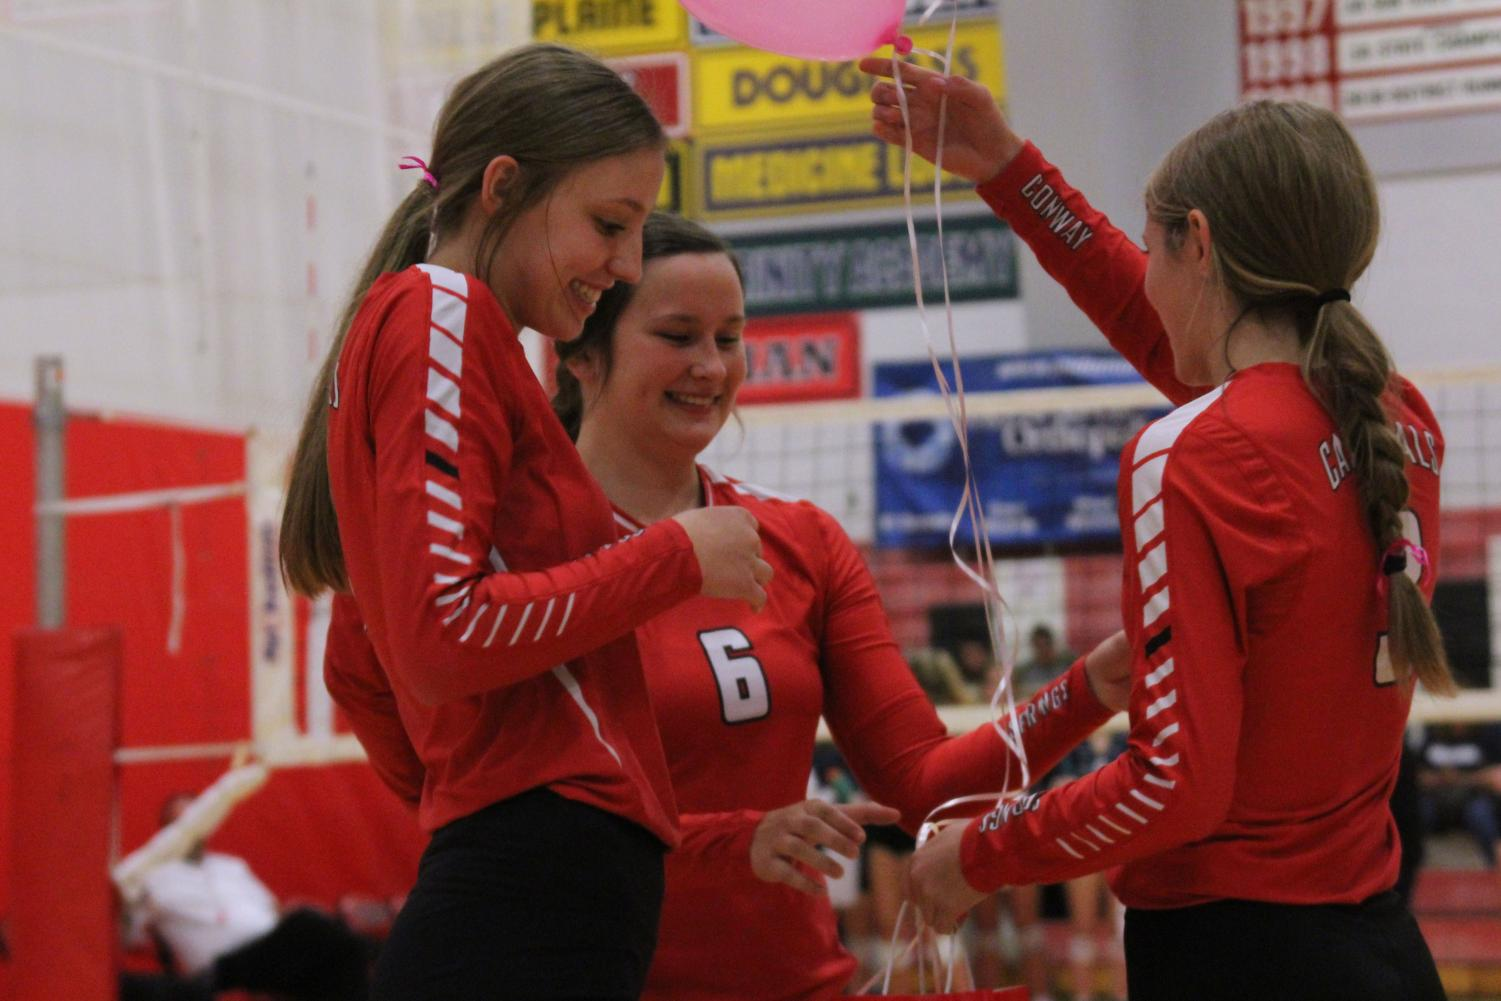 """During senior night, senior Karley Mooneyham is given a gift by junior Kyla Echelberry and sophomore Kenzie Wenke. """"I feel bittersweet because I'm pretty done with high school, but I loved volleyball and have played it for a long time,"""" Mooneyham said."""